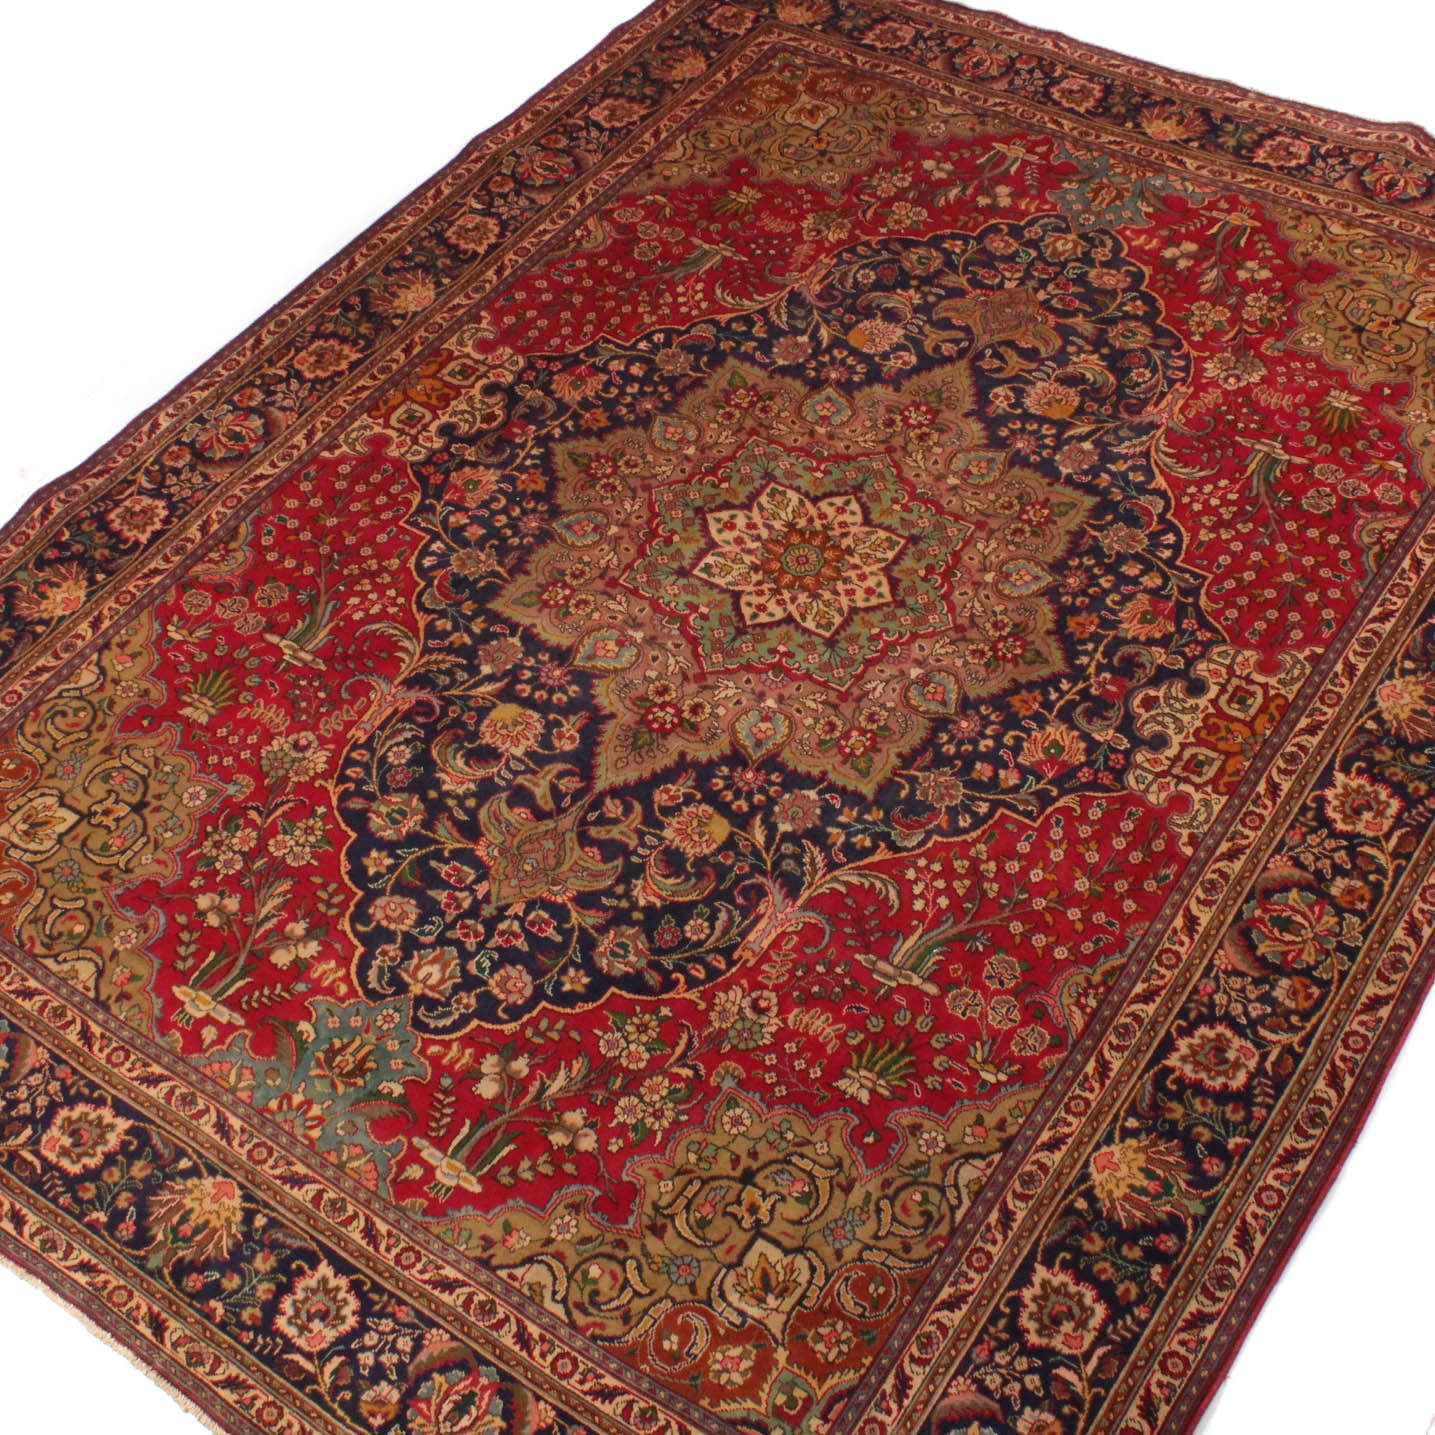 9' x 13' Vintage Hand-Knotted Persian Qum Room Size Rug